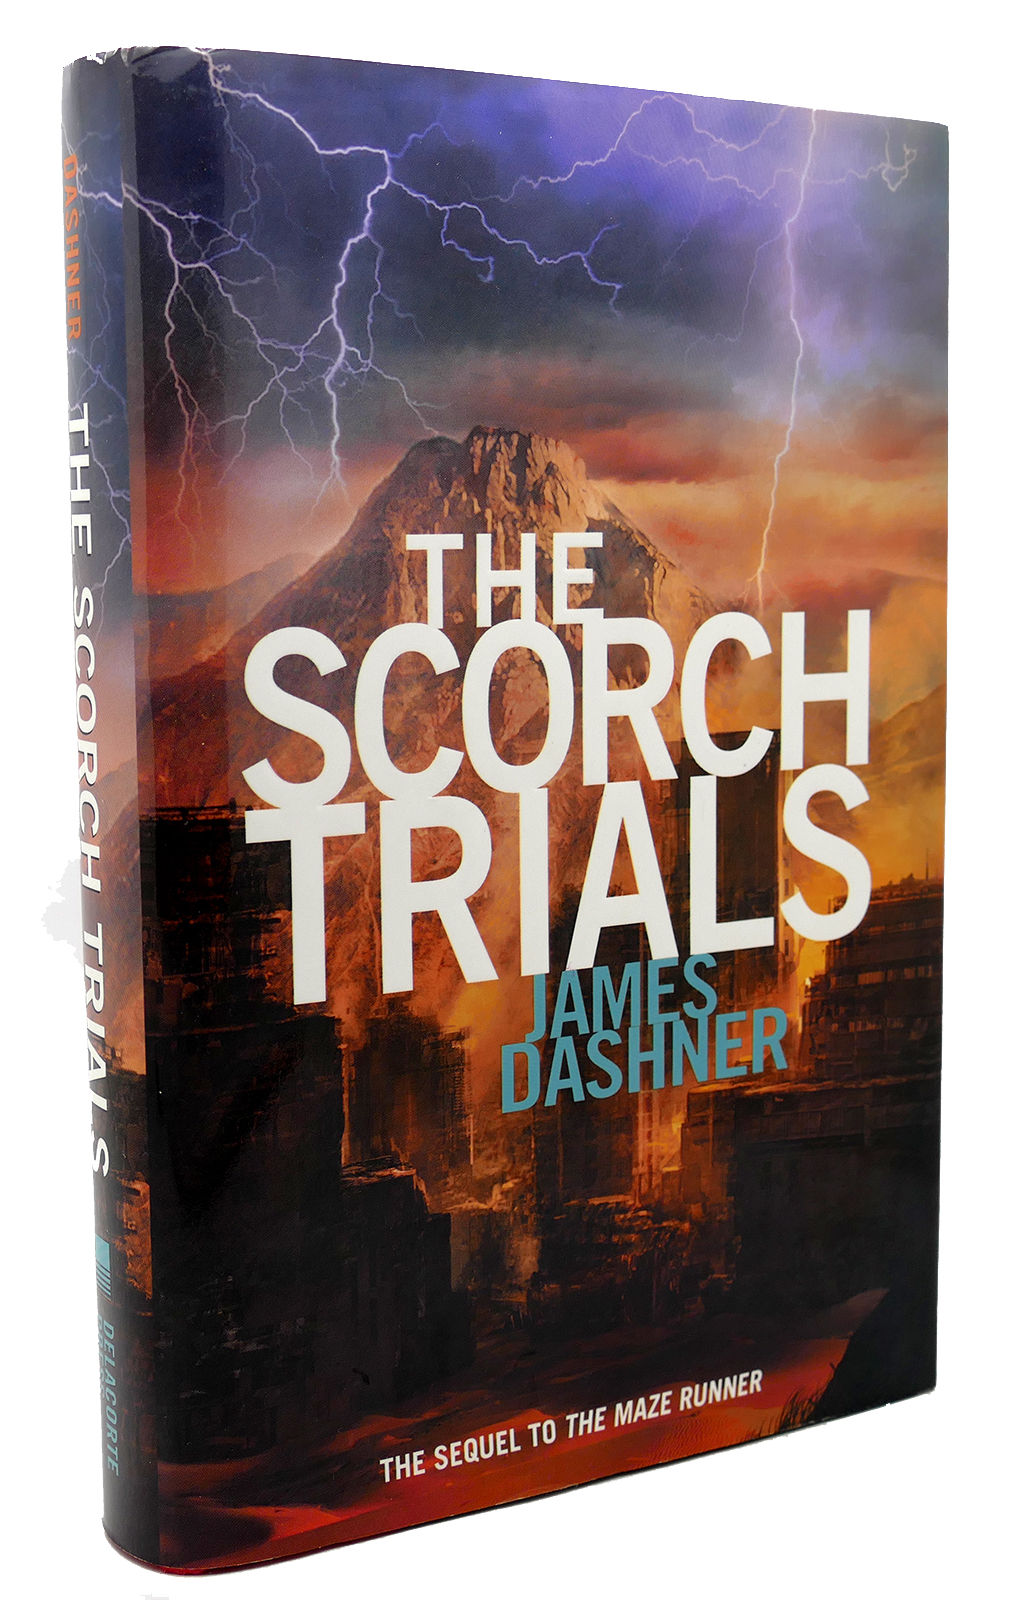 The Scorch Trials James Dashner First Edition First Printing